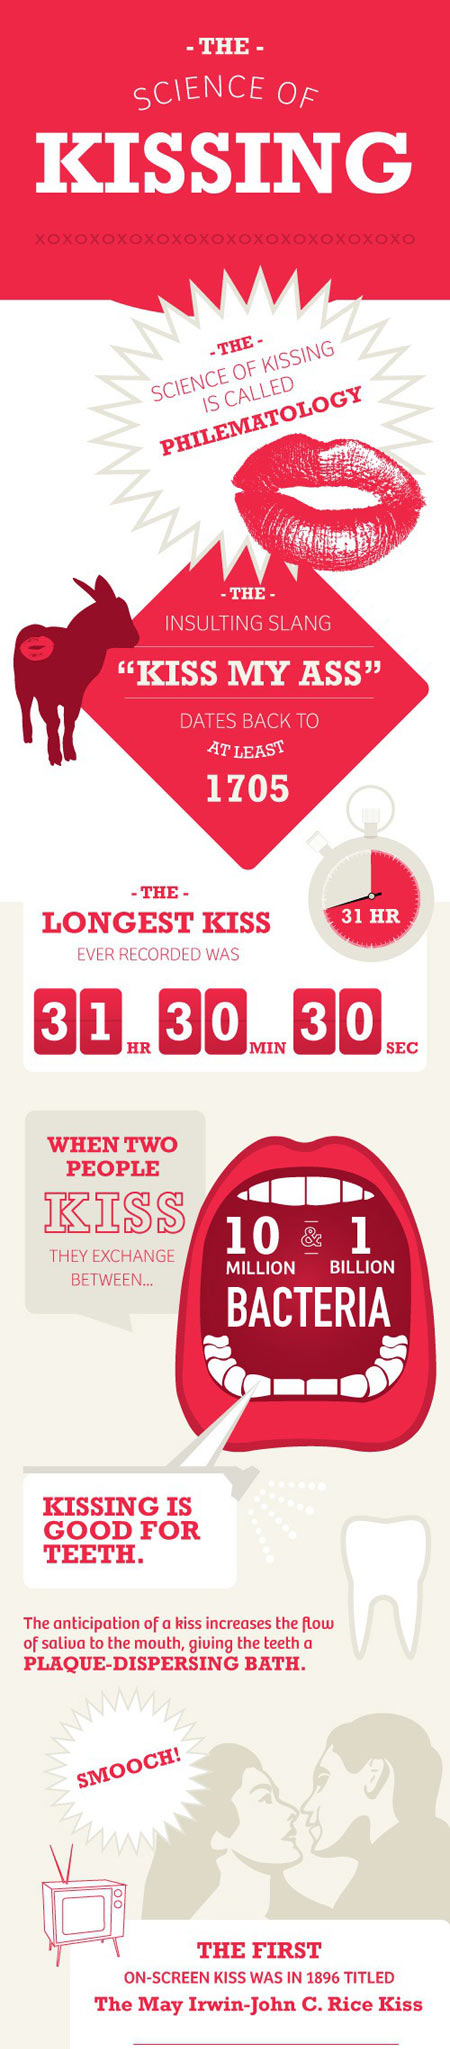 cool-science-kissing-infographic